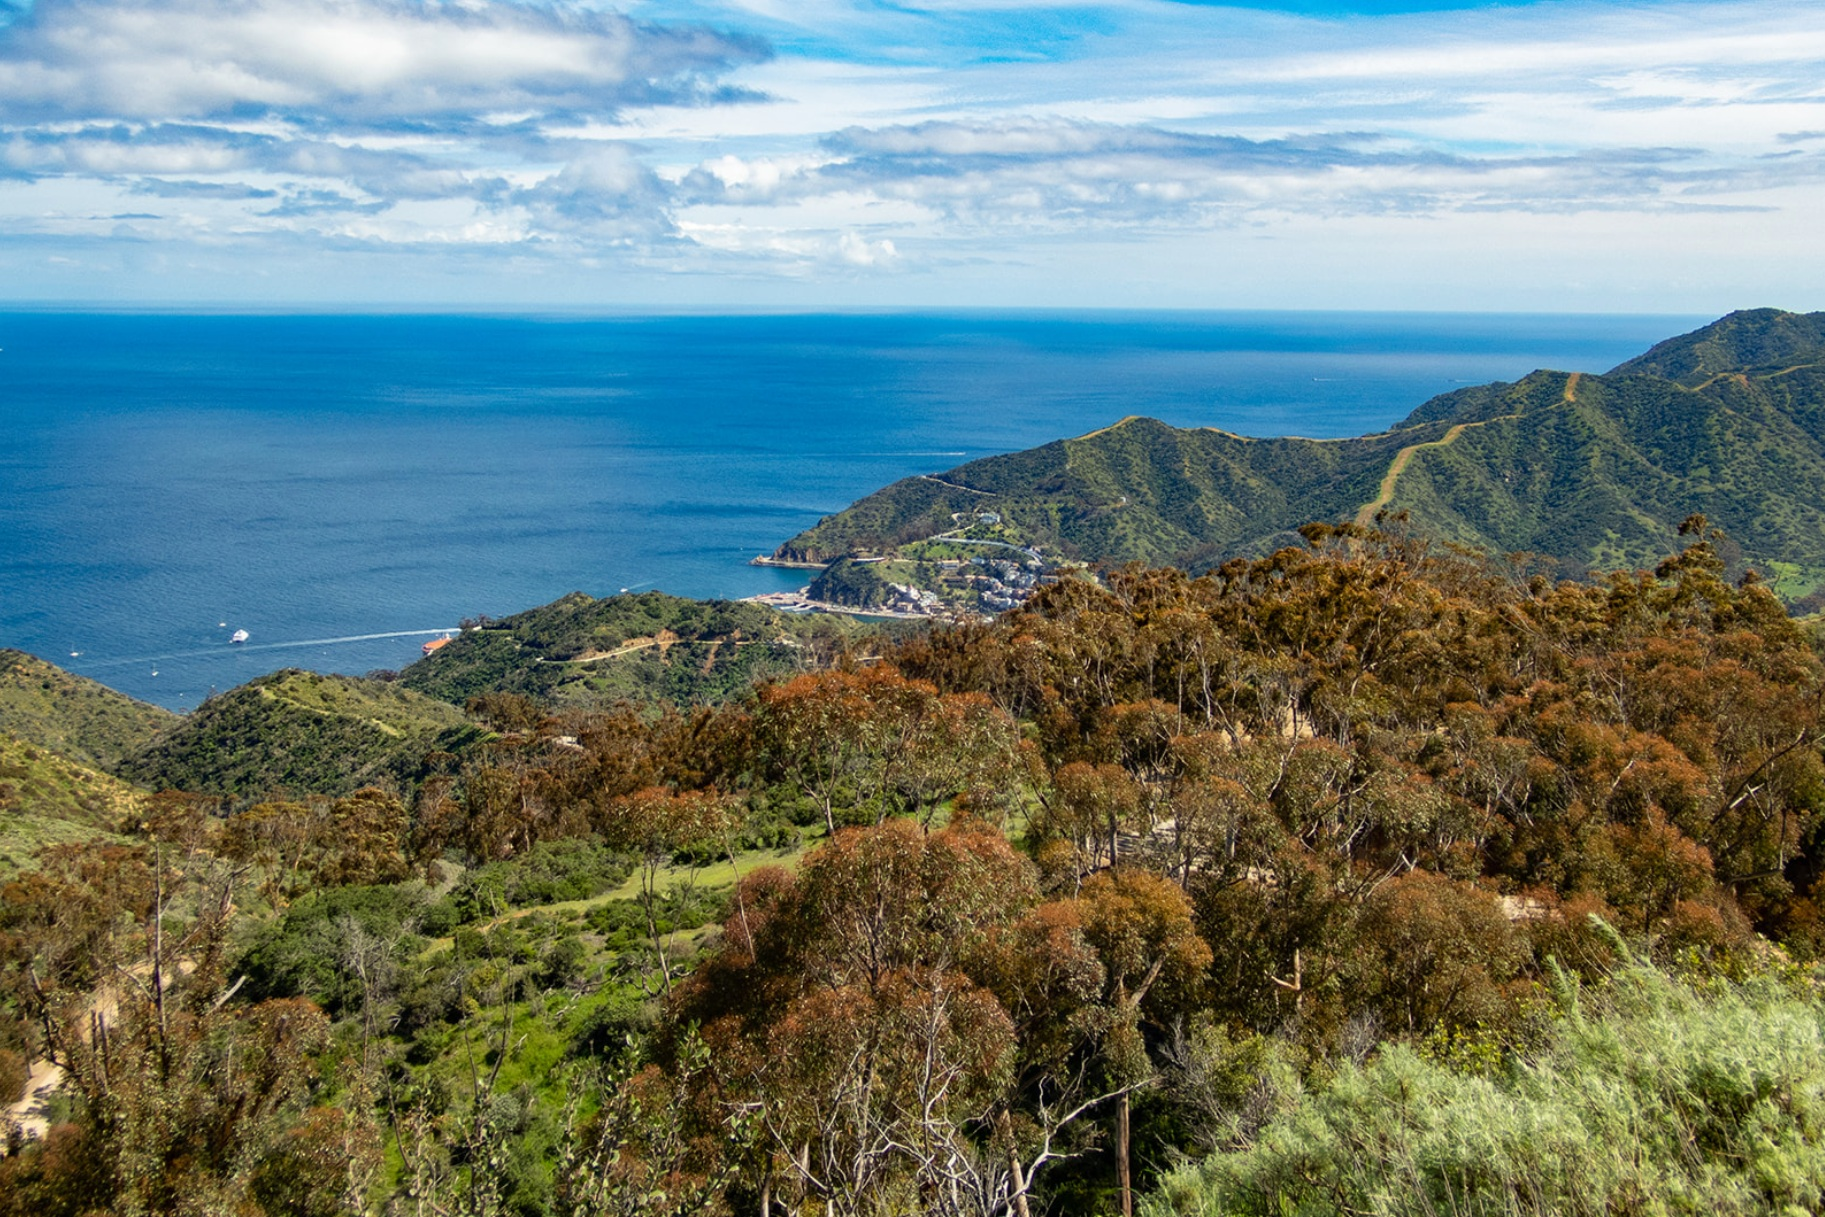 Spectacular Vistas - Stretching out of the vast lands of the Catalina Island Conservancy, Run Catalina gives the opportunity to run in the island's interior and experience beautiful views of the coastline and wildlife sightings in remote locations along its trails.